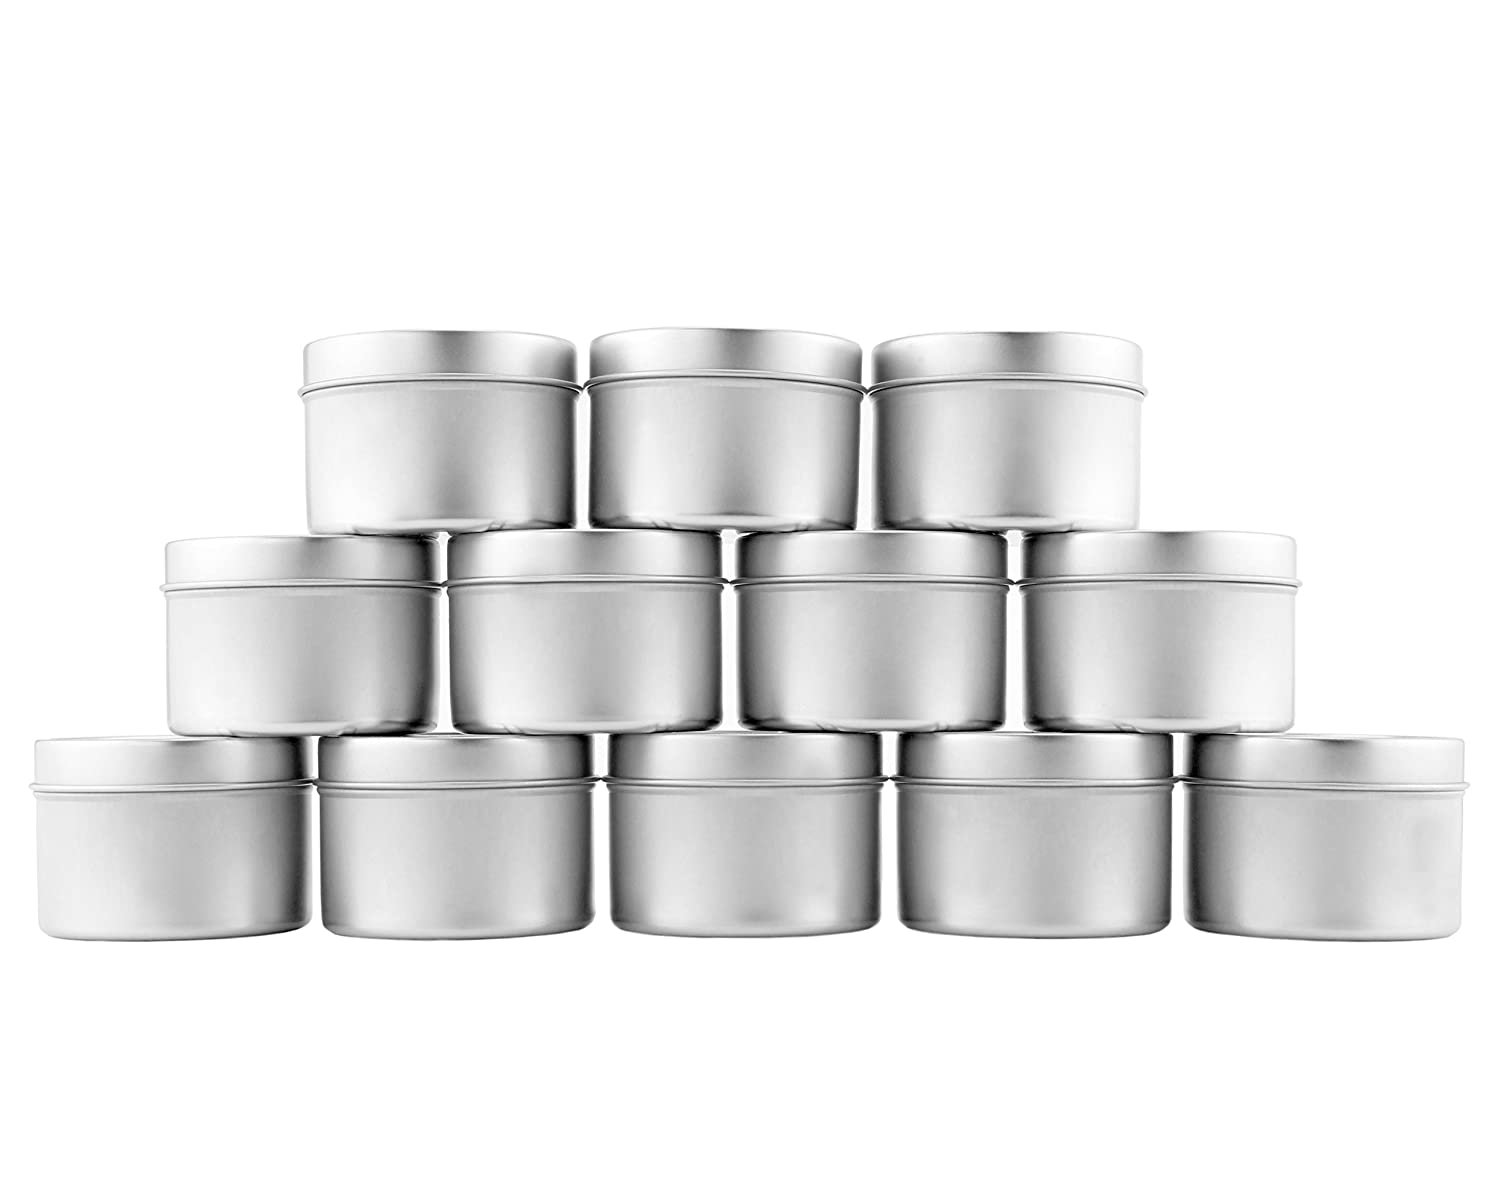 Balms /& Gels 12-Pack Party Favors ; Metal Storage Containers w//Slip-On Lids for Candle Making Spices Gifts 4-Oz Small Candle Tins